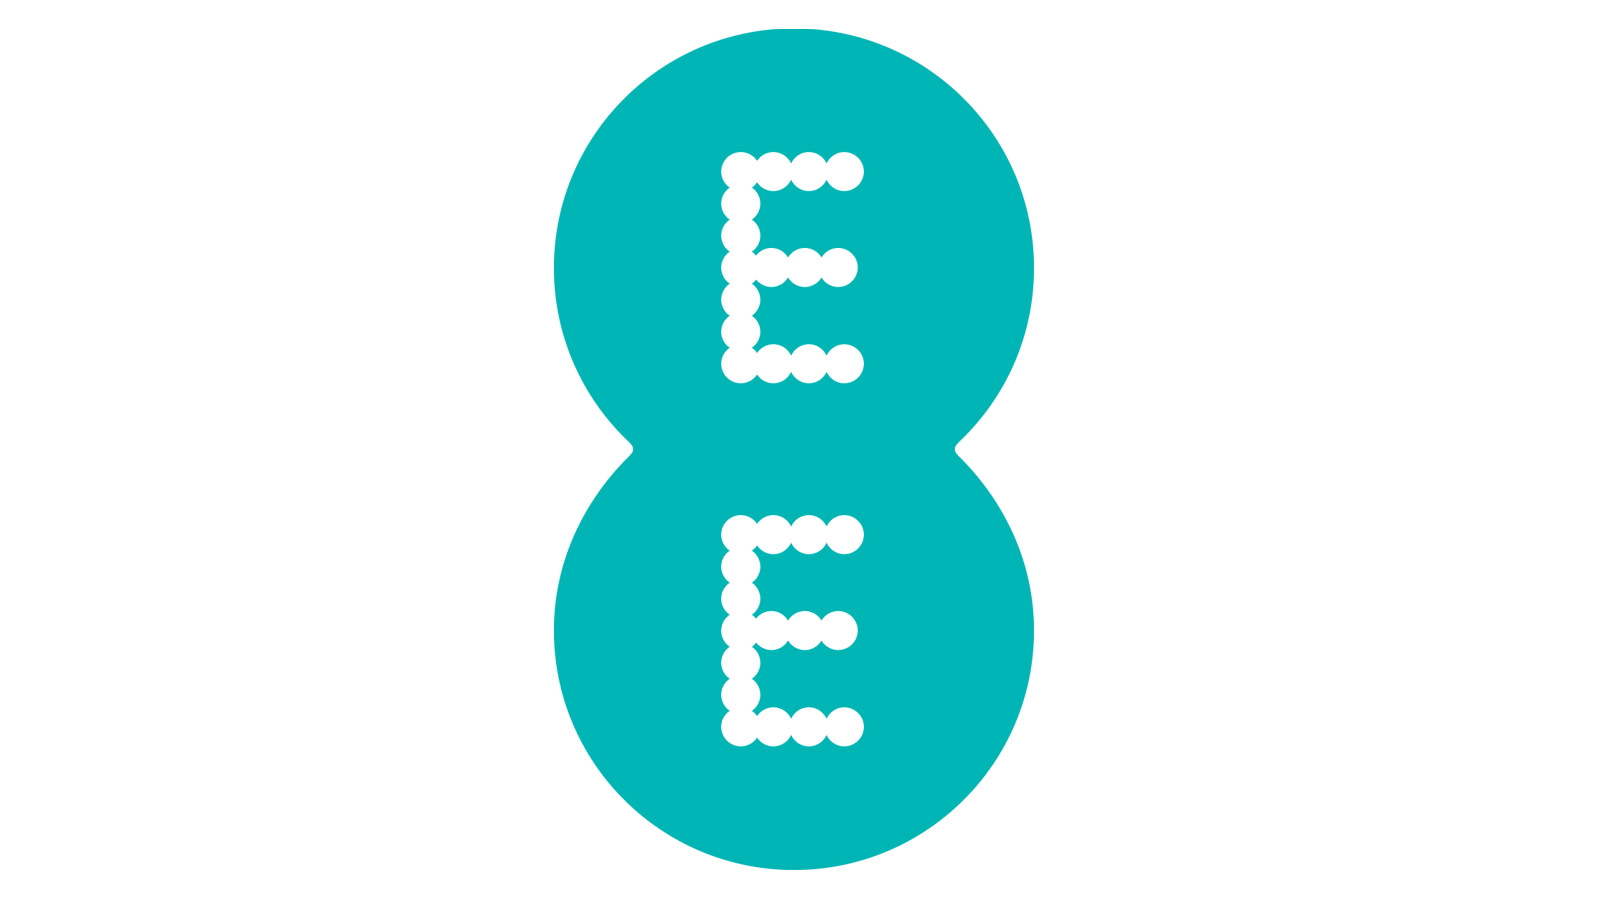 EE contact telephone number